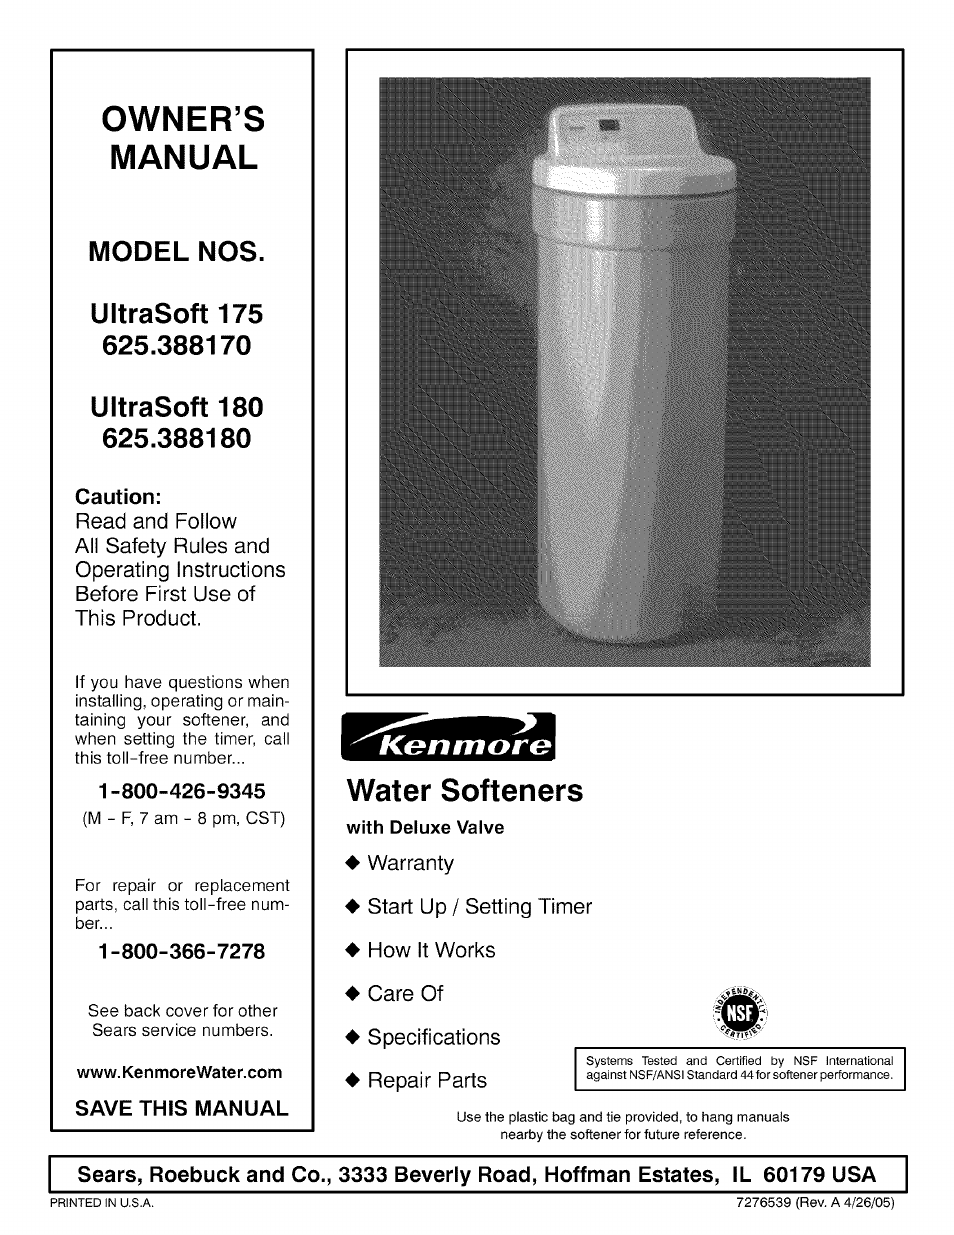 Kenmore 300 series water softener owners manual.